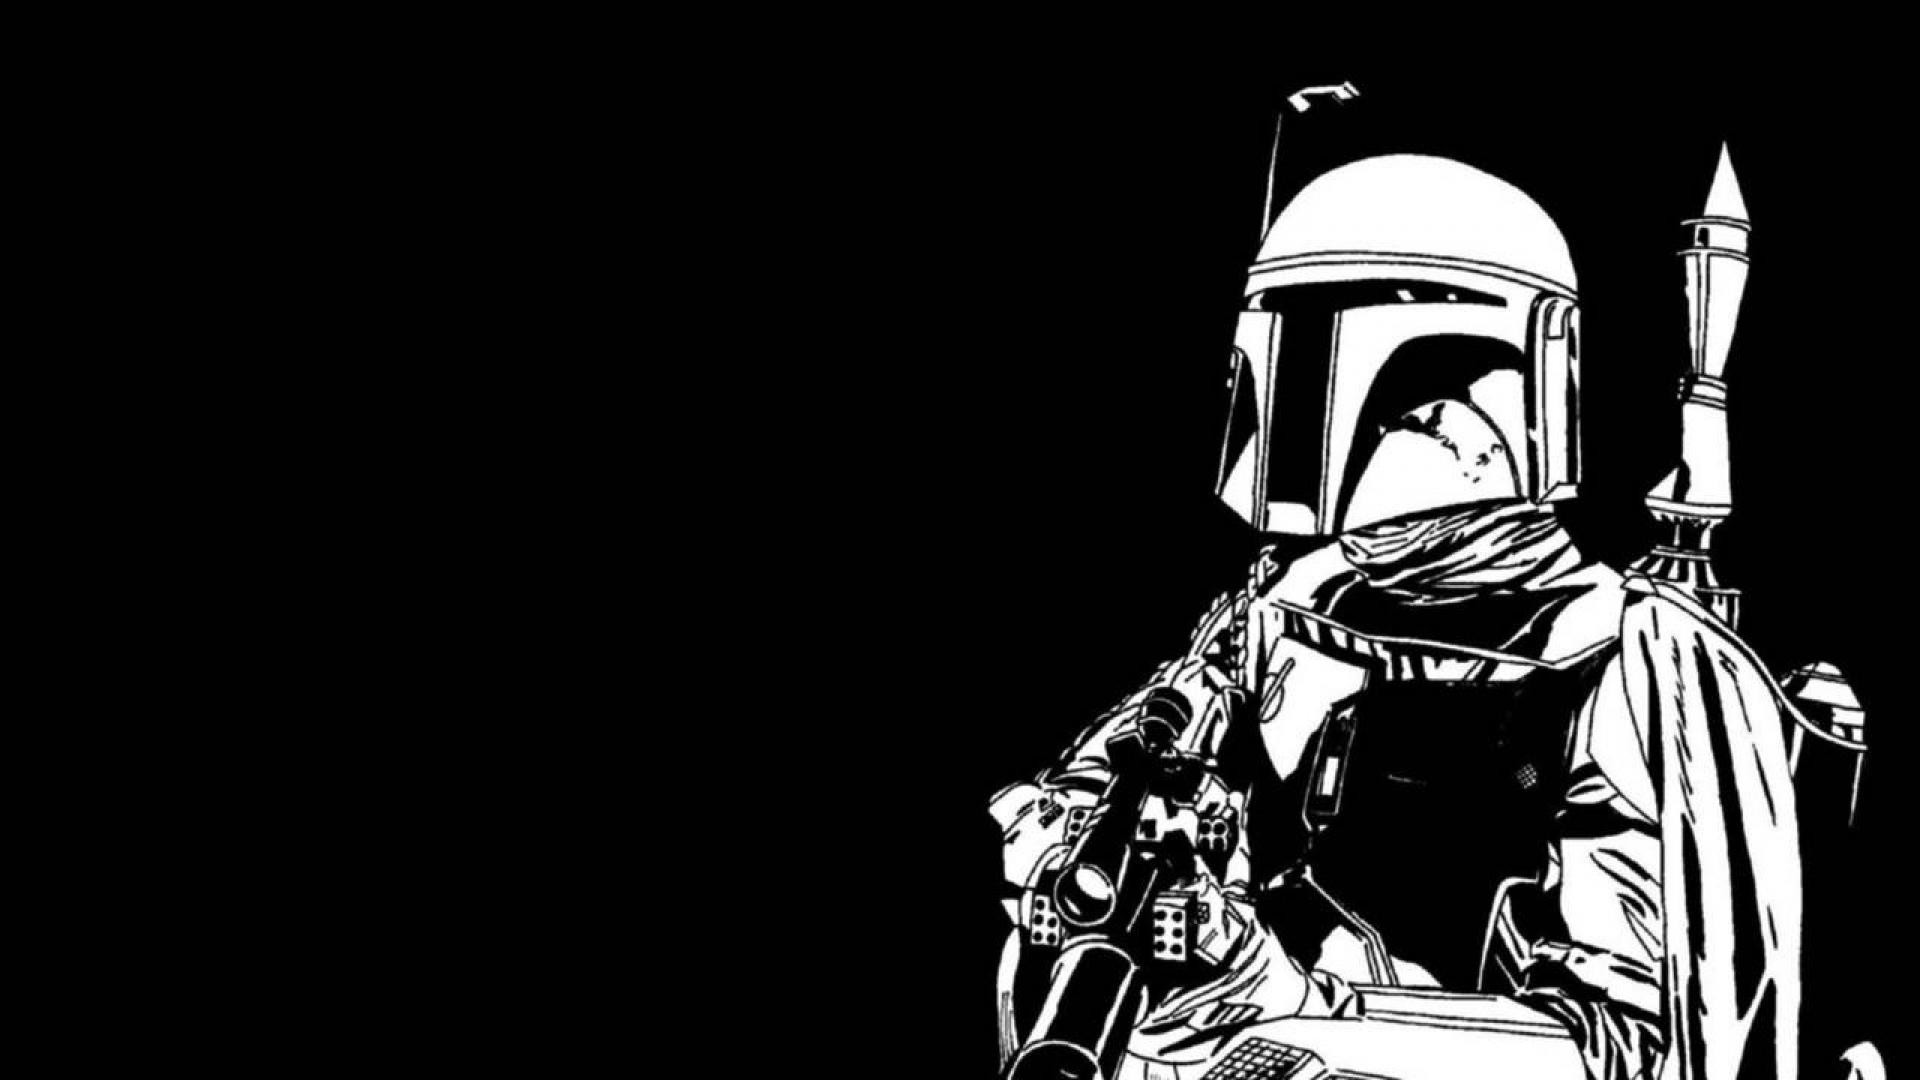 142 Boba Fett Wallpaper 1920 1080